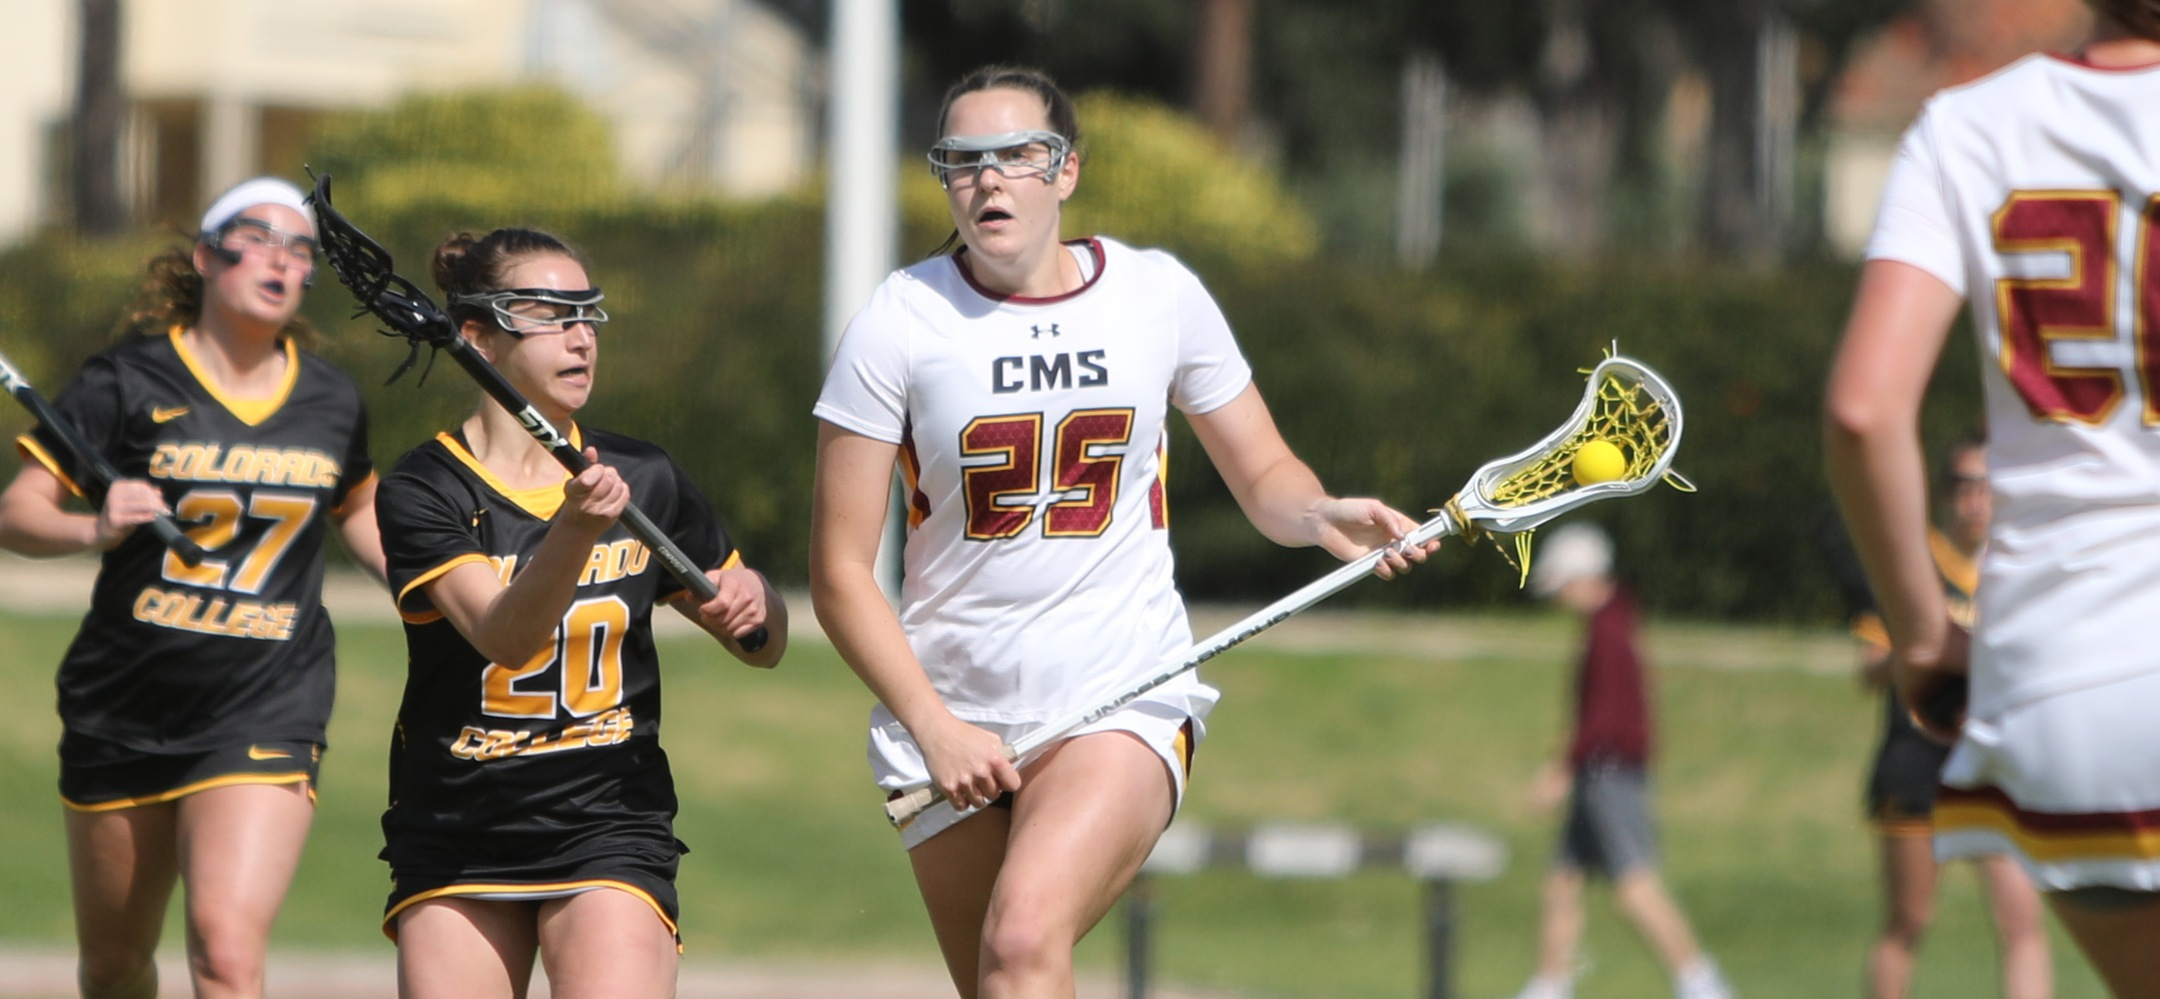 Sally Abel had four goals and an assist to key an 18-9 road win at Redlands